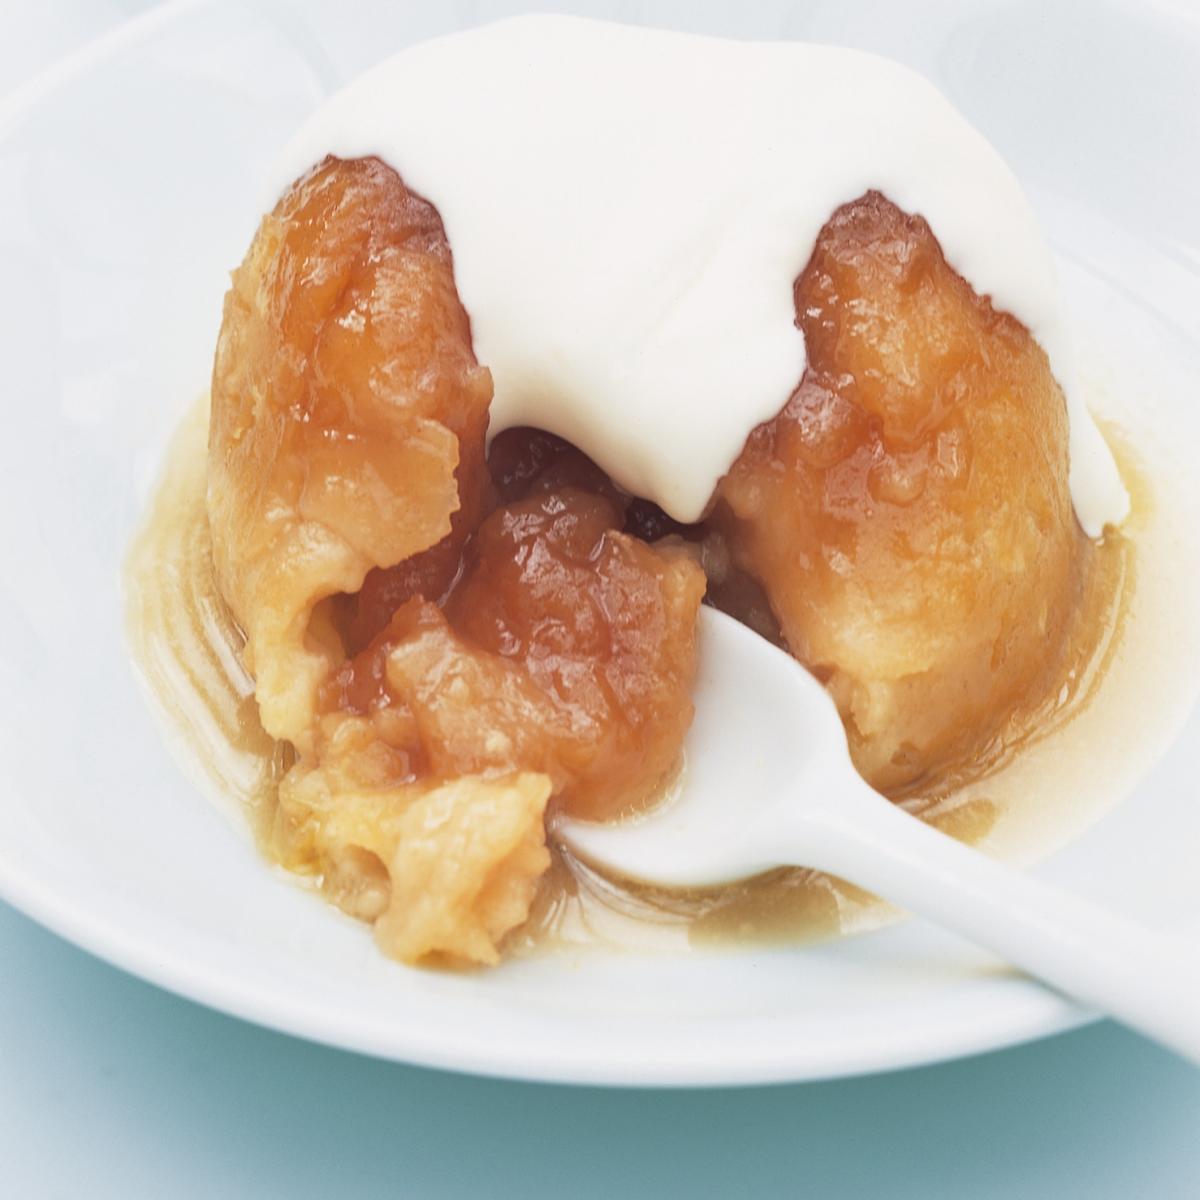 Htc individual sussex pond puddings with lemon butter sauce